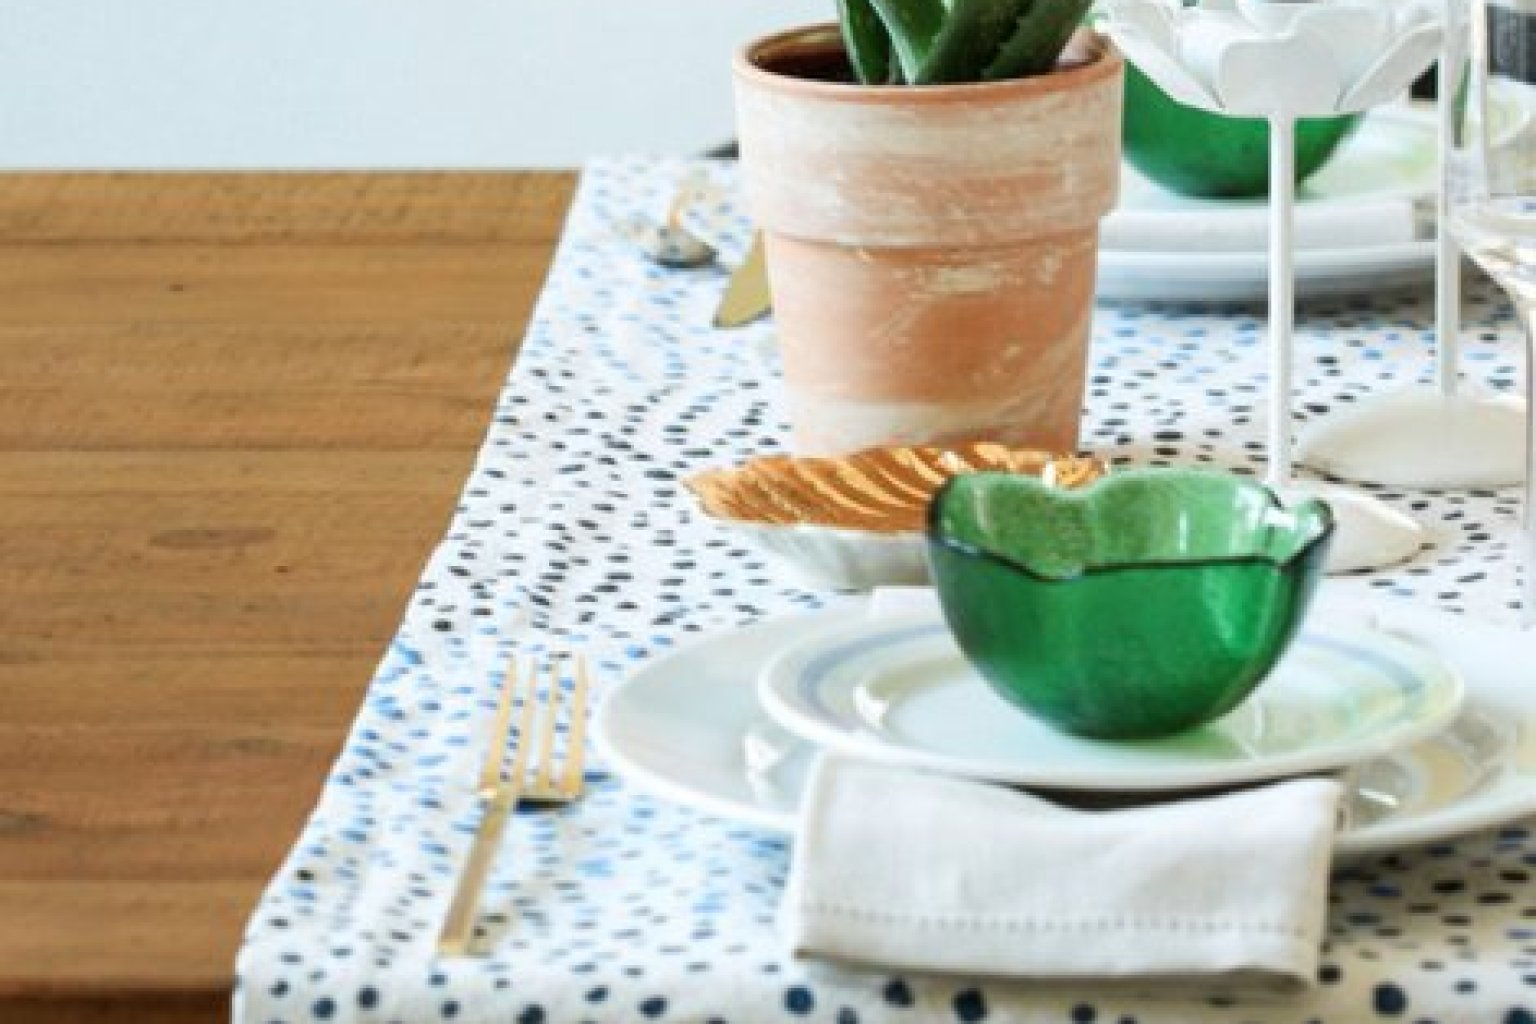 DIY Table Runner Idea Is The Easiest Way To Make Your Dining Room Look Amazing PHOTO